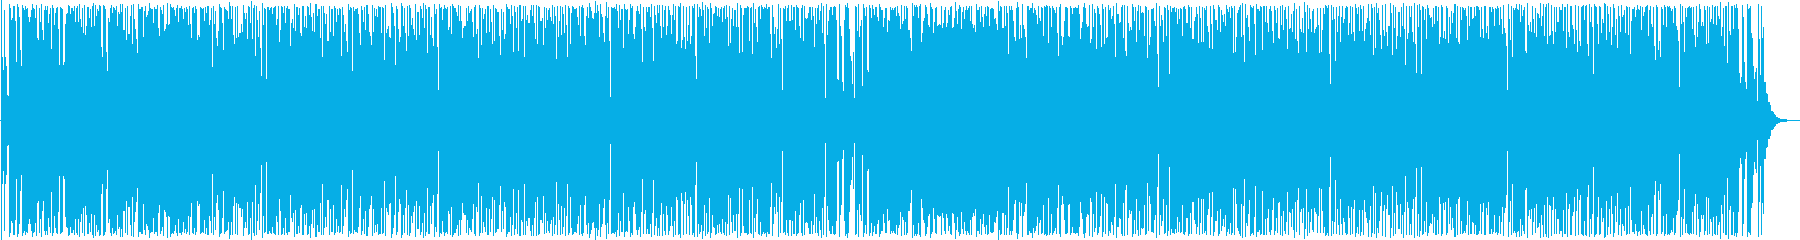 Refreshing and fun pop songs's reproduced waveform